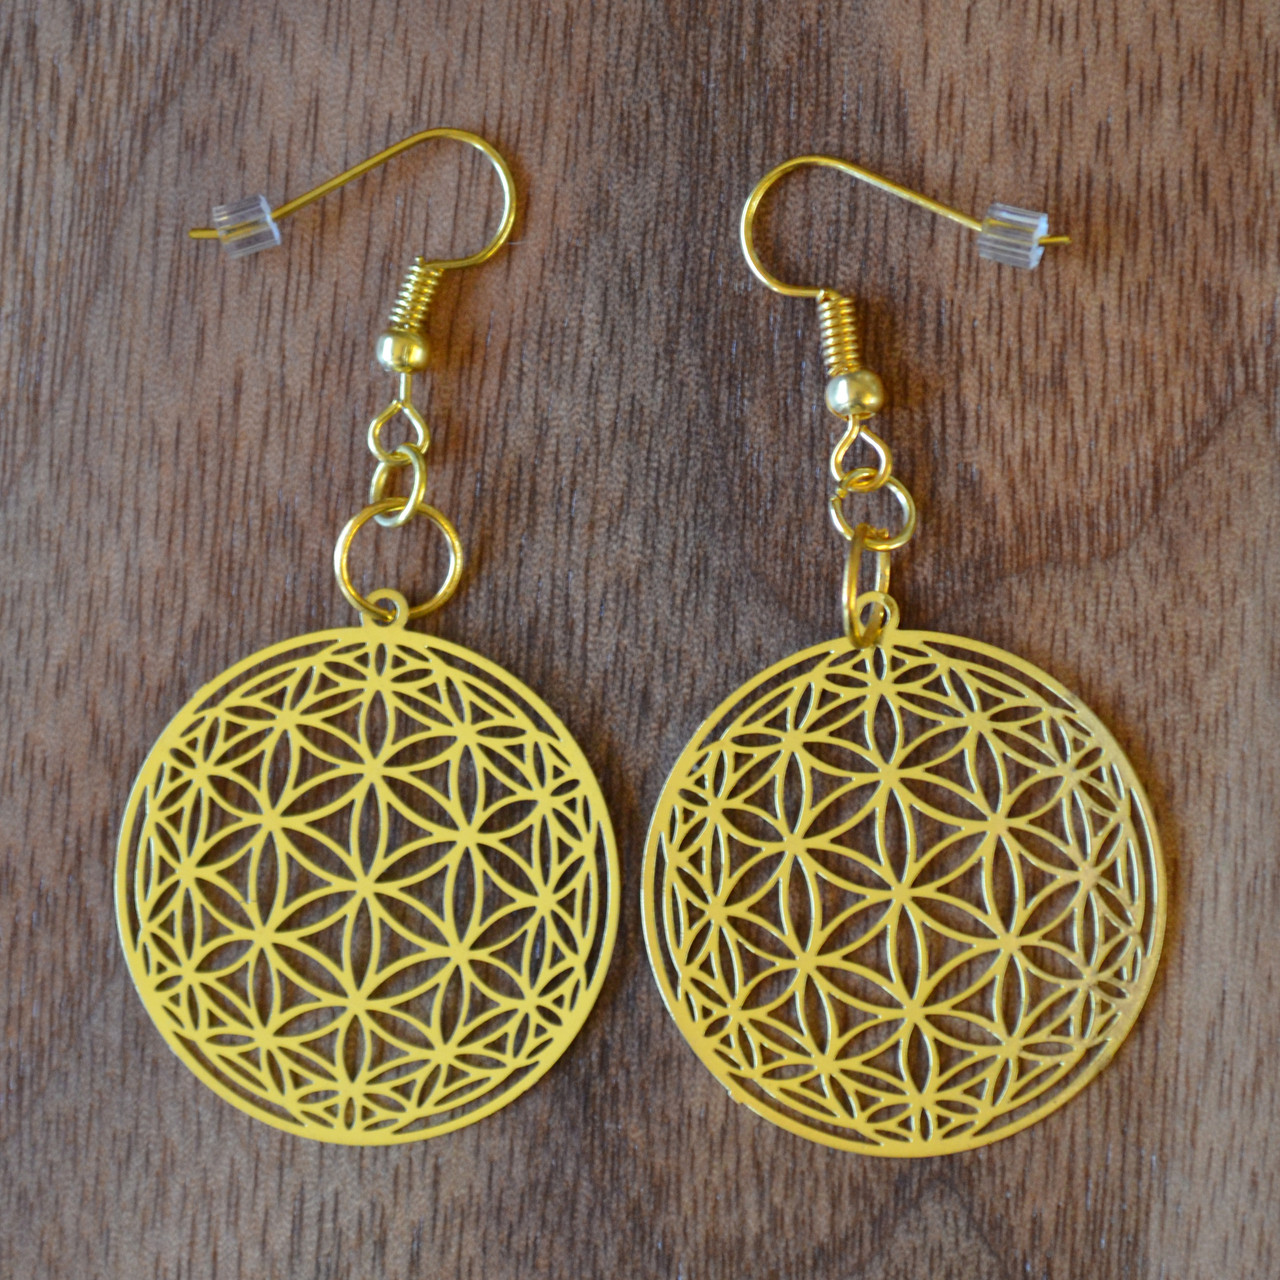 9c9357a69 Flower of Life Orb Earrings - 18 karat Gold Plated - LaserTrees